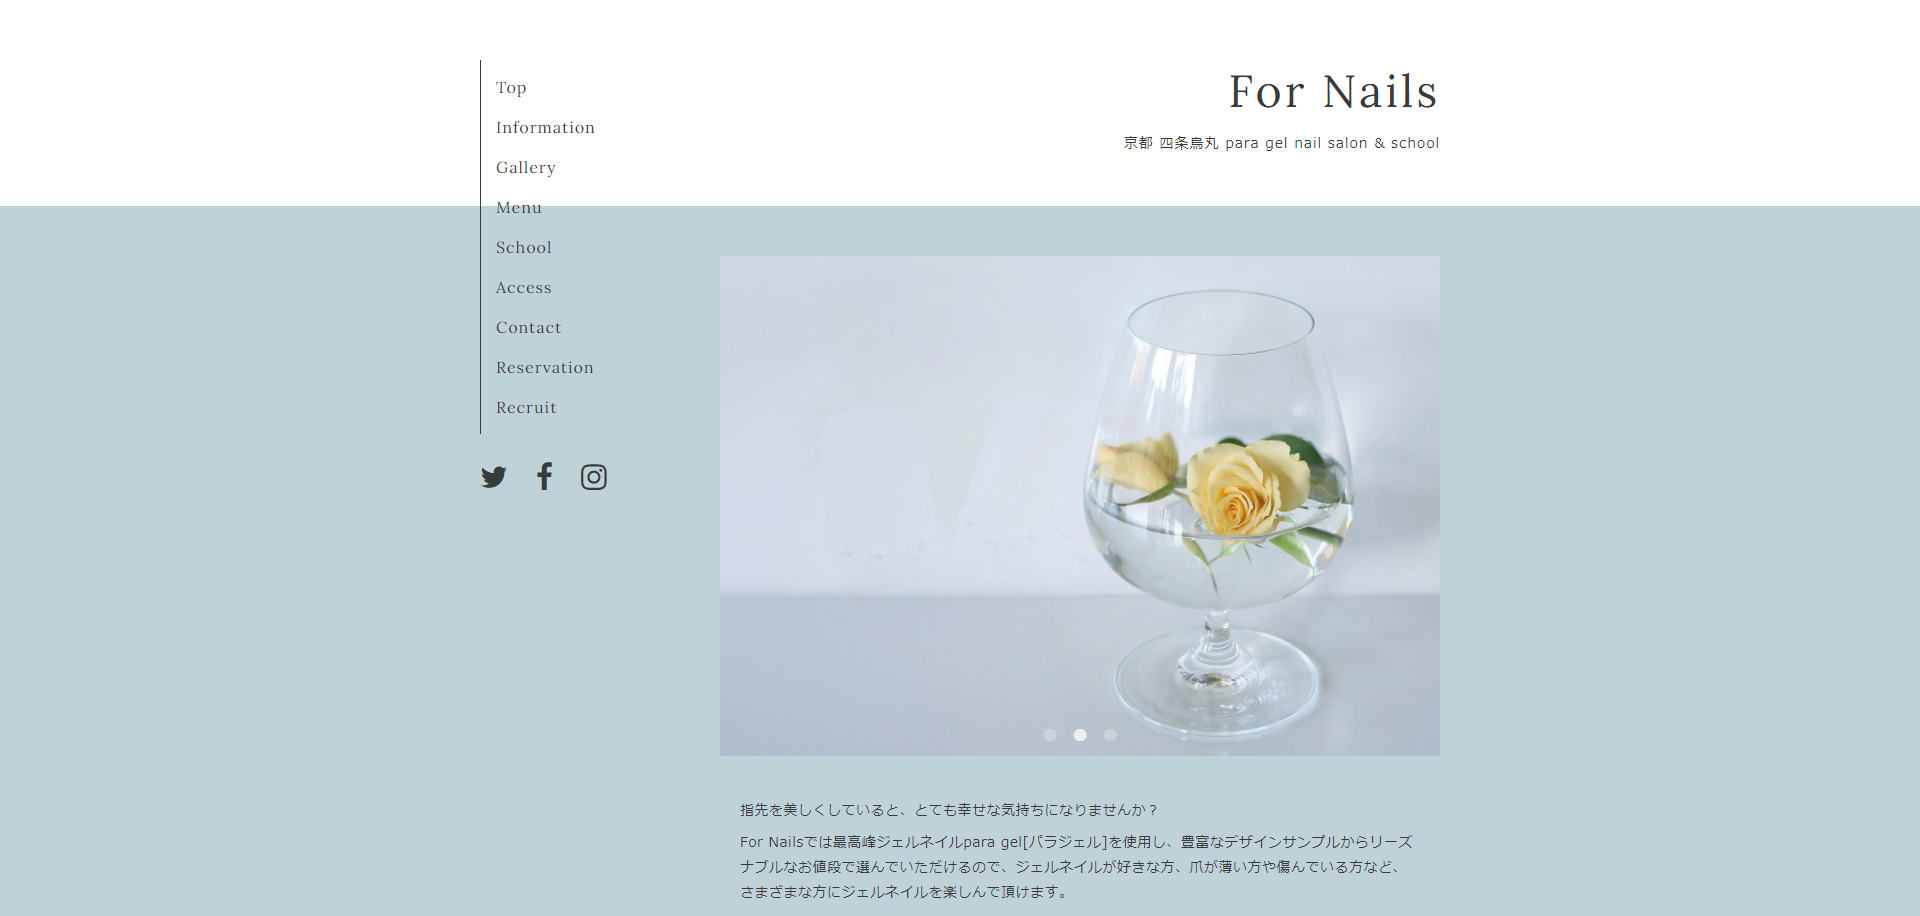 For Nails